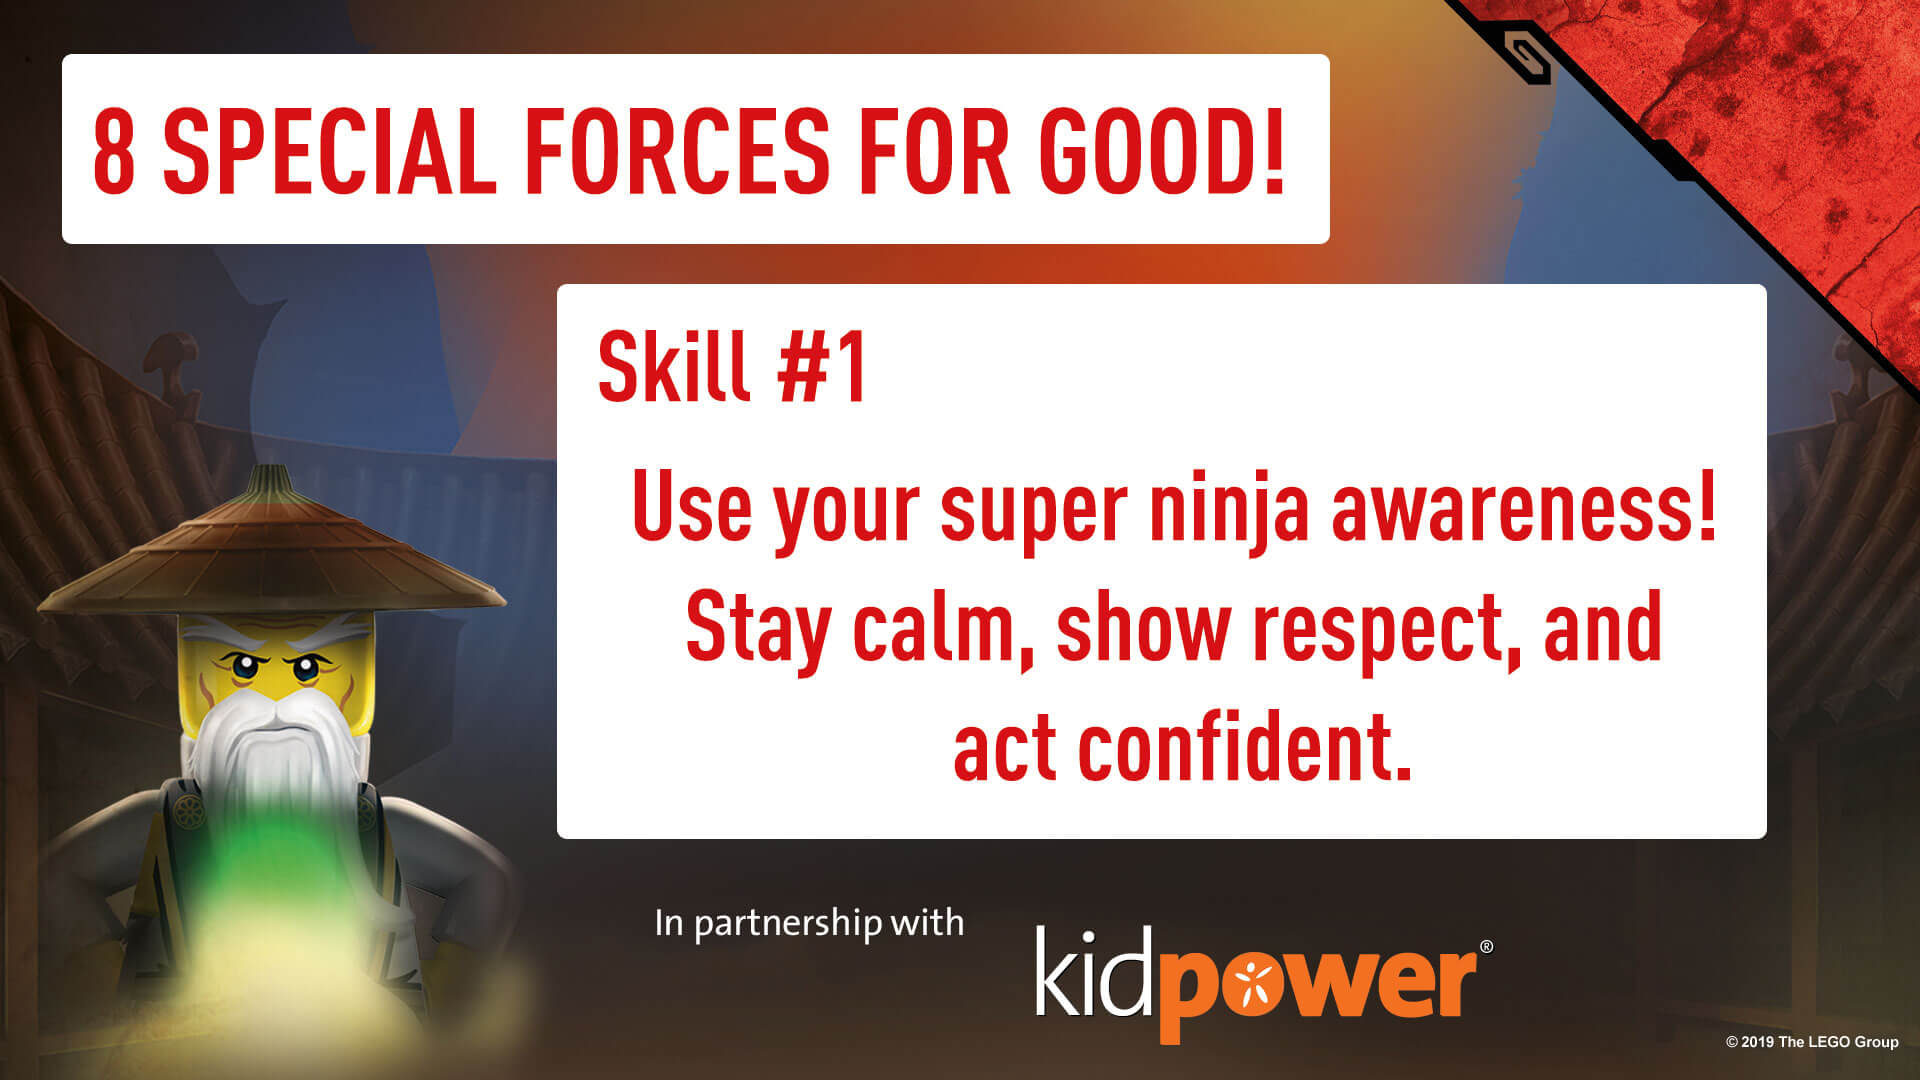 Special Forces For Good - Skill #1 - NINJAGO & KIDPOWER